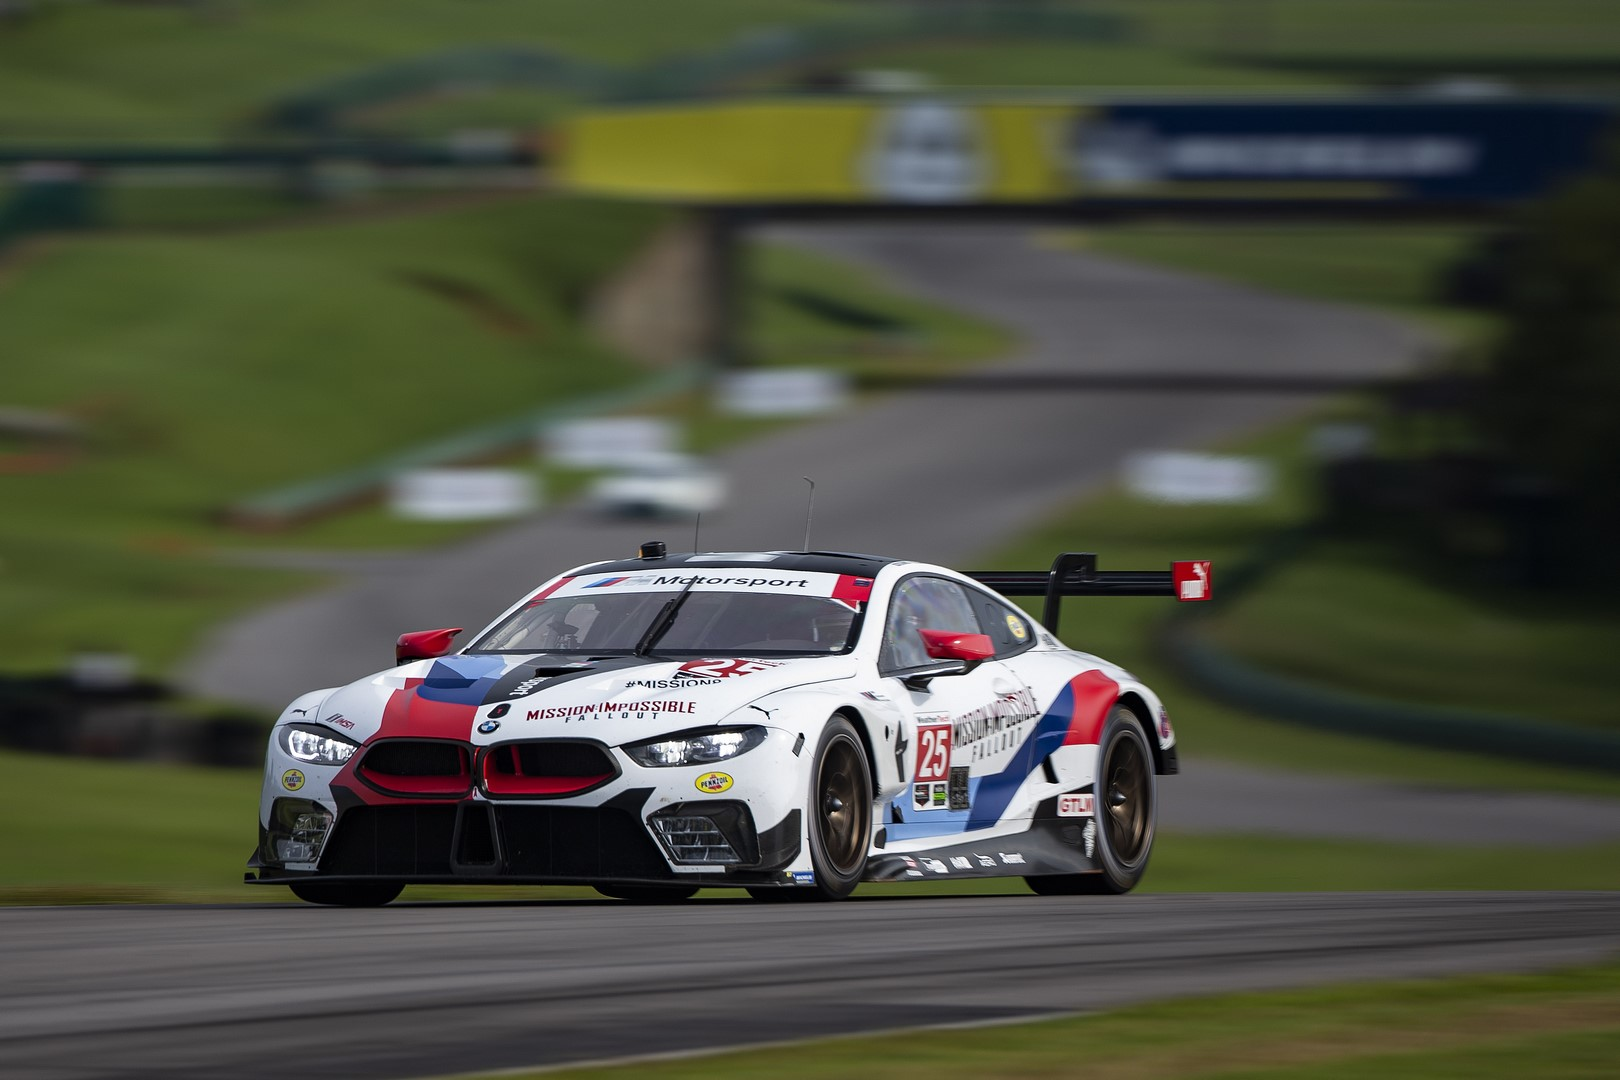 BMW Team RLL delivers first BMW M8 GTE victory!